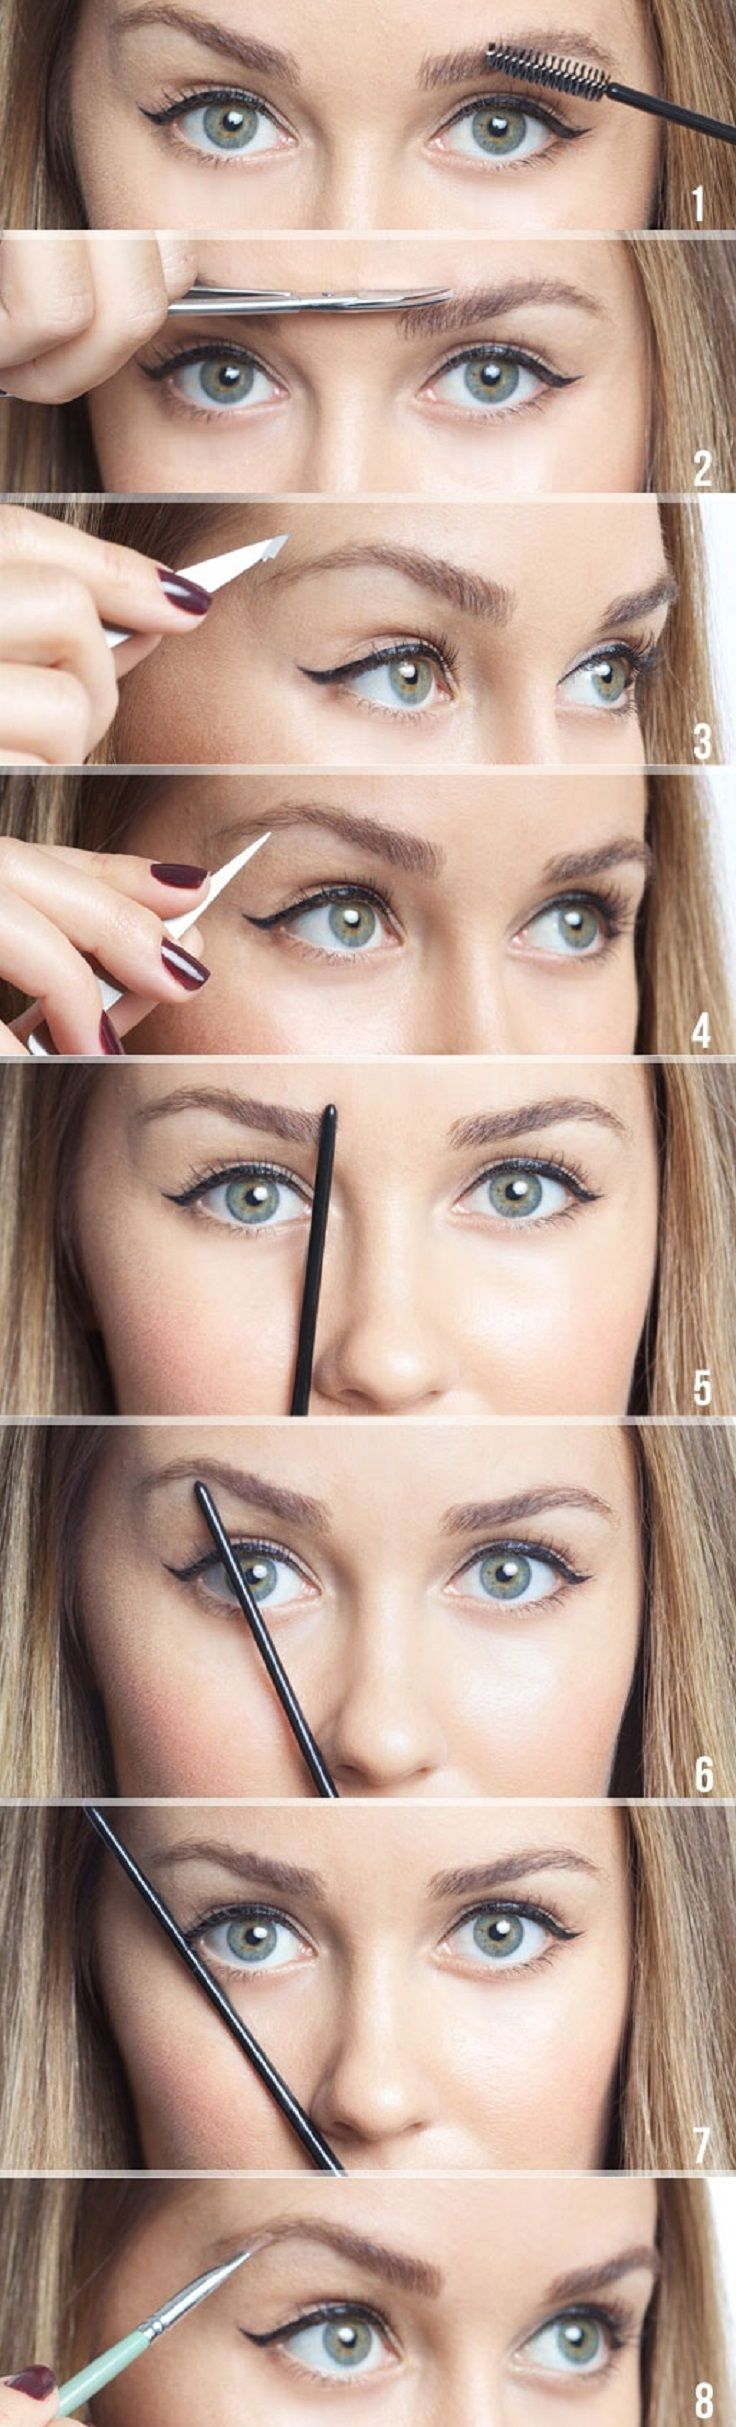 air jordan signature series Top 10 Eyebrow Tips and Tutorials that Could Change Your Entire Face